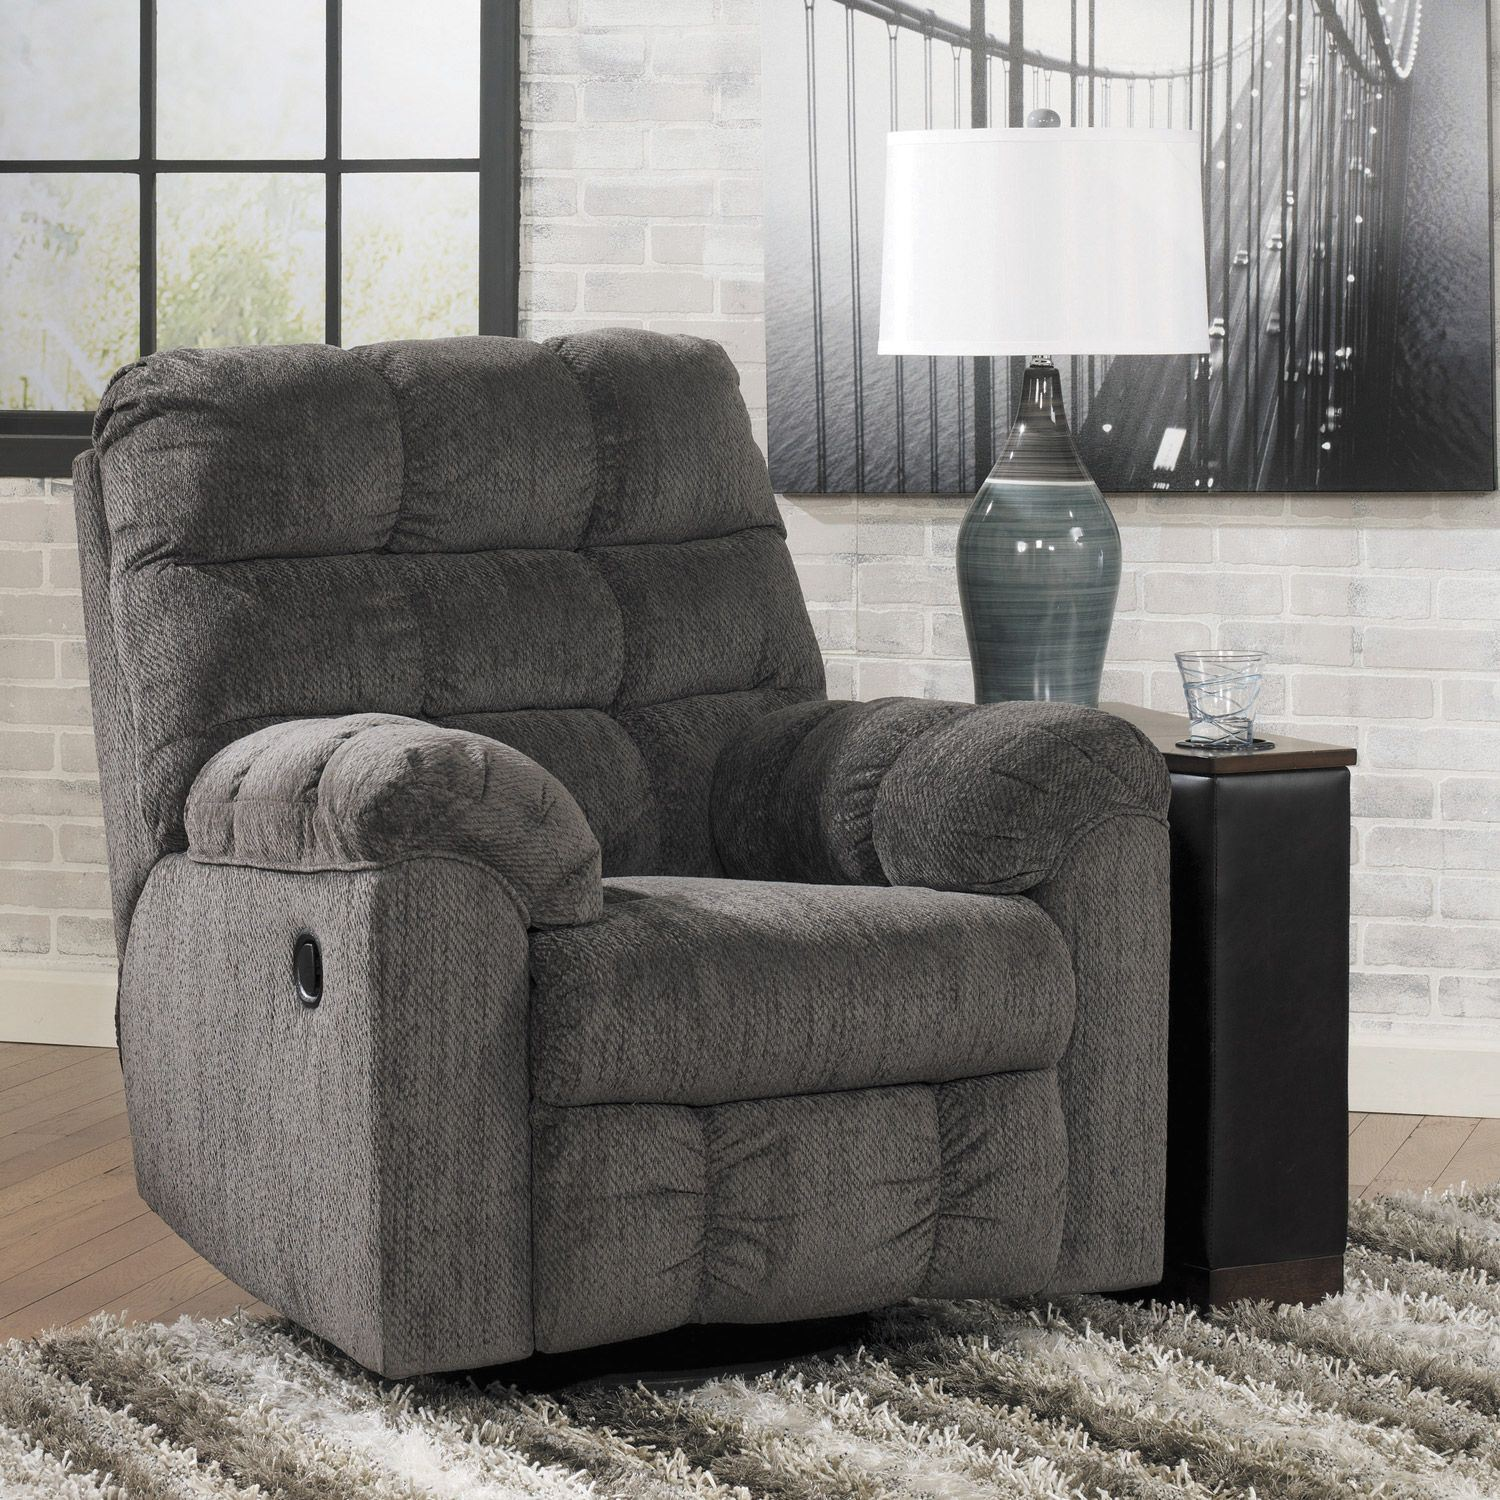 Swivel Rocker Recliner Chair Slate Swivel Rocker Recliner